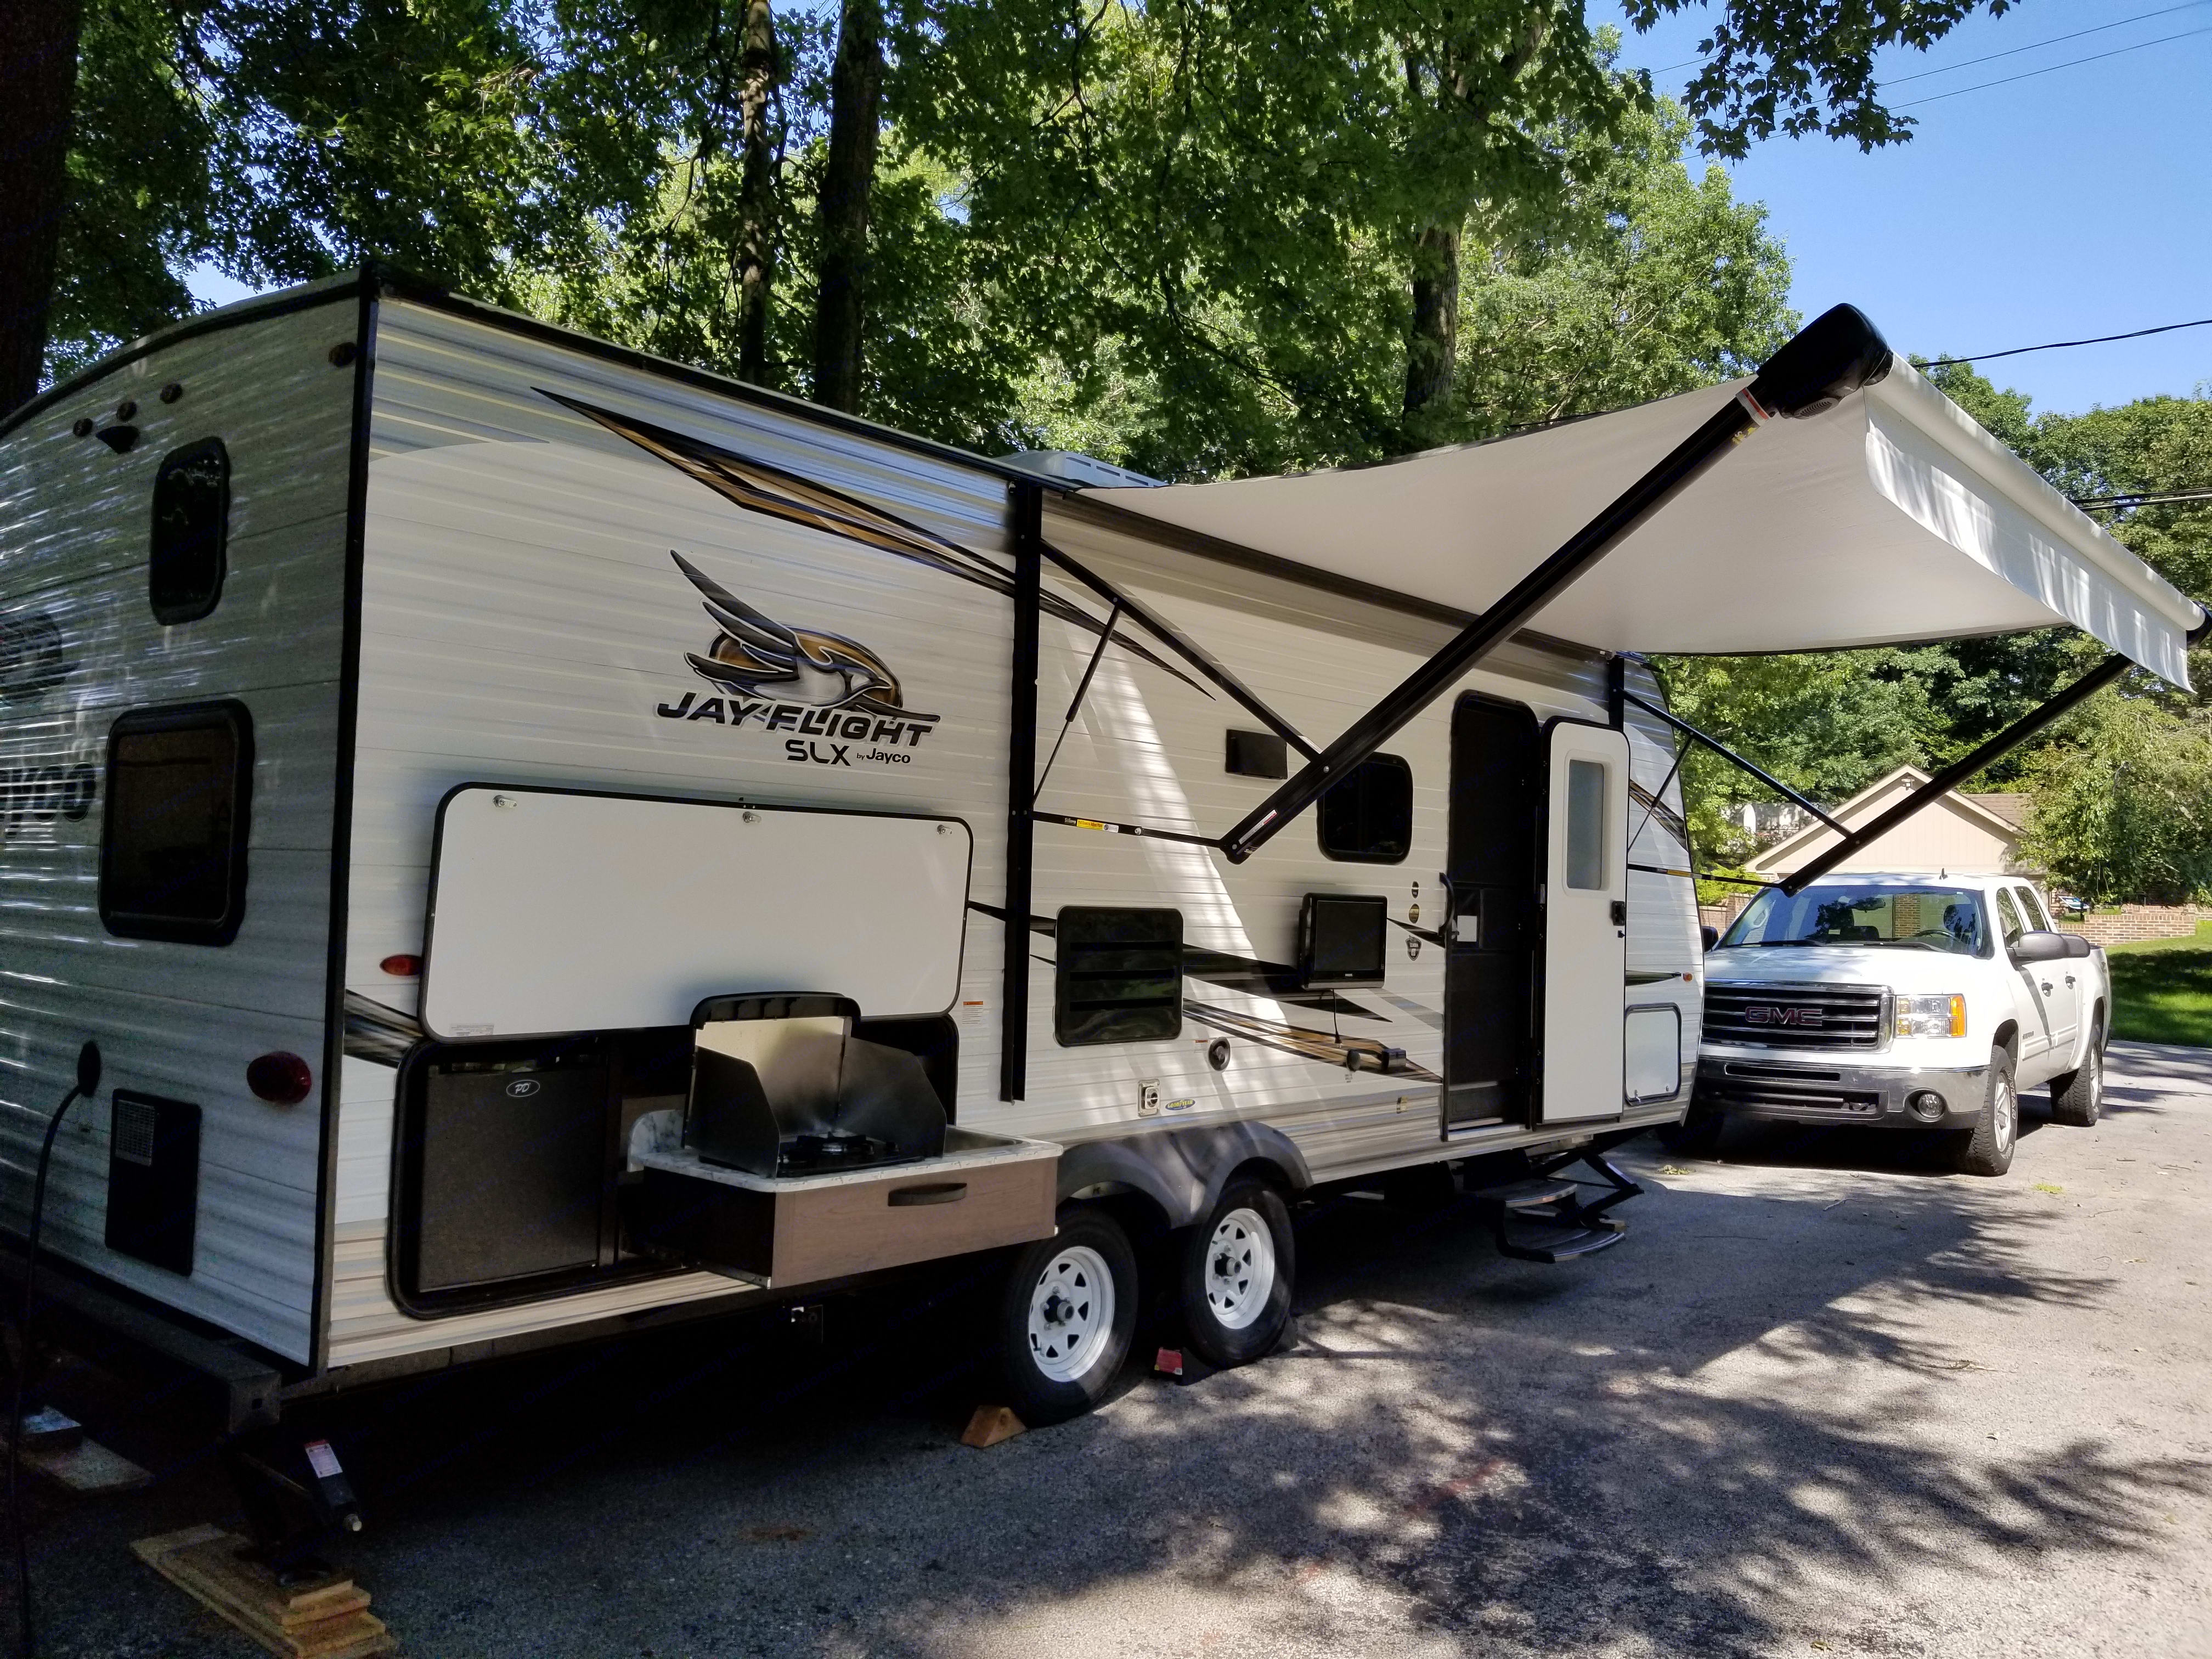 Outdoor kitchen, 13' power awning, outdoor TV mount with connection to antenna and power. . Jayco Jay Flight SLX 224BH 2019